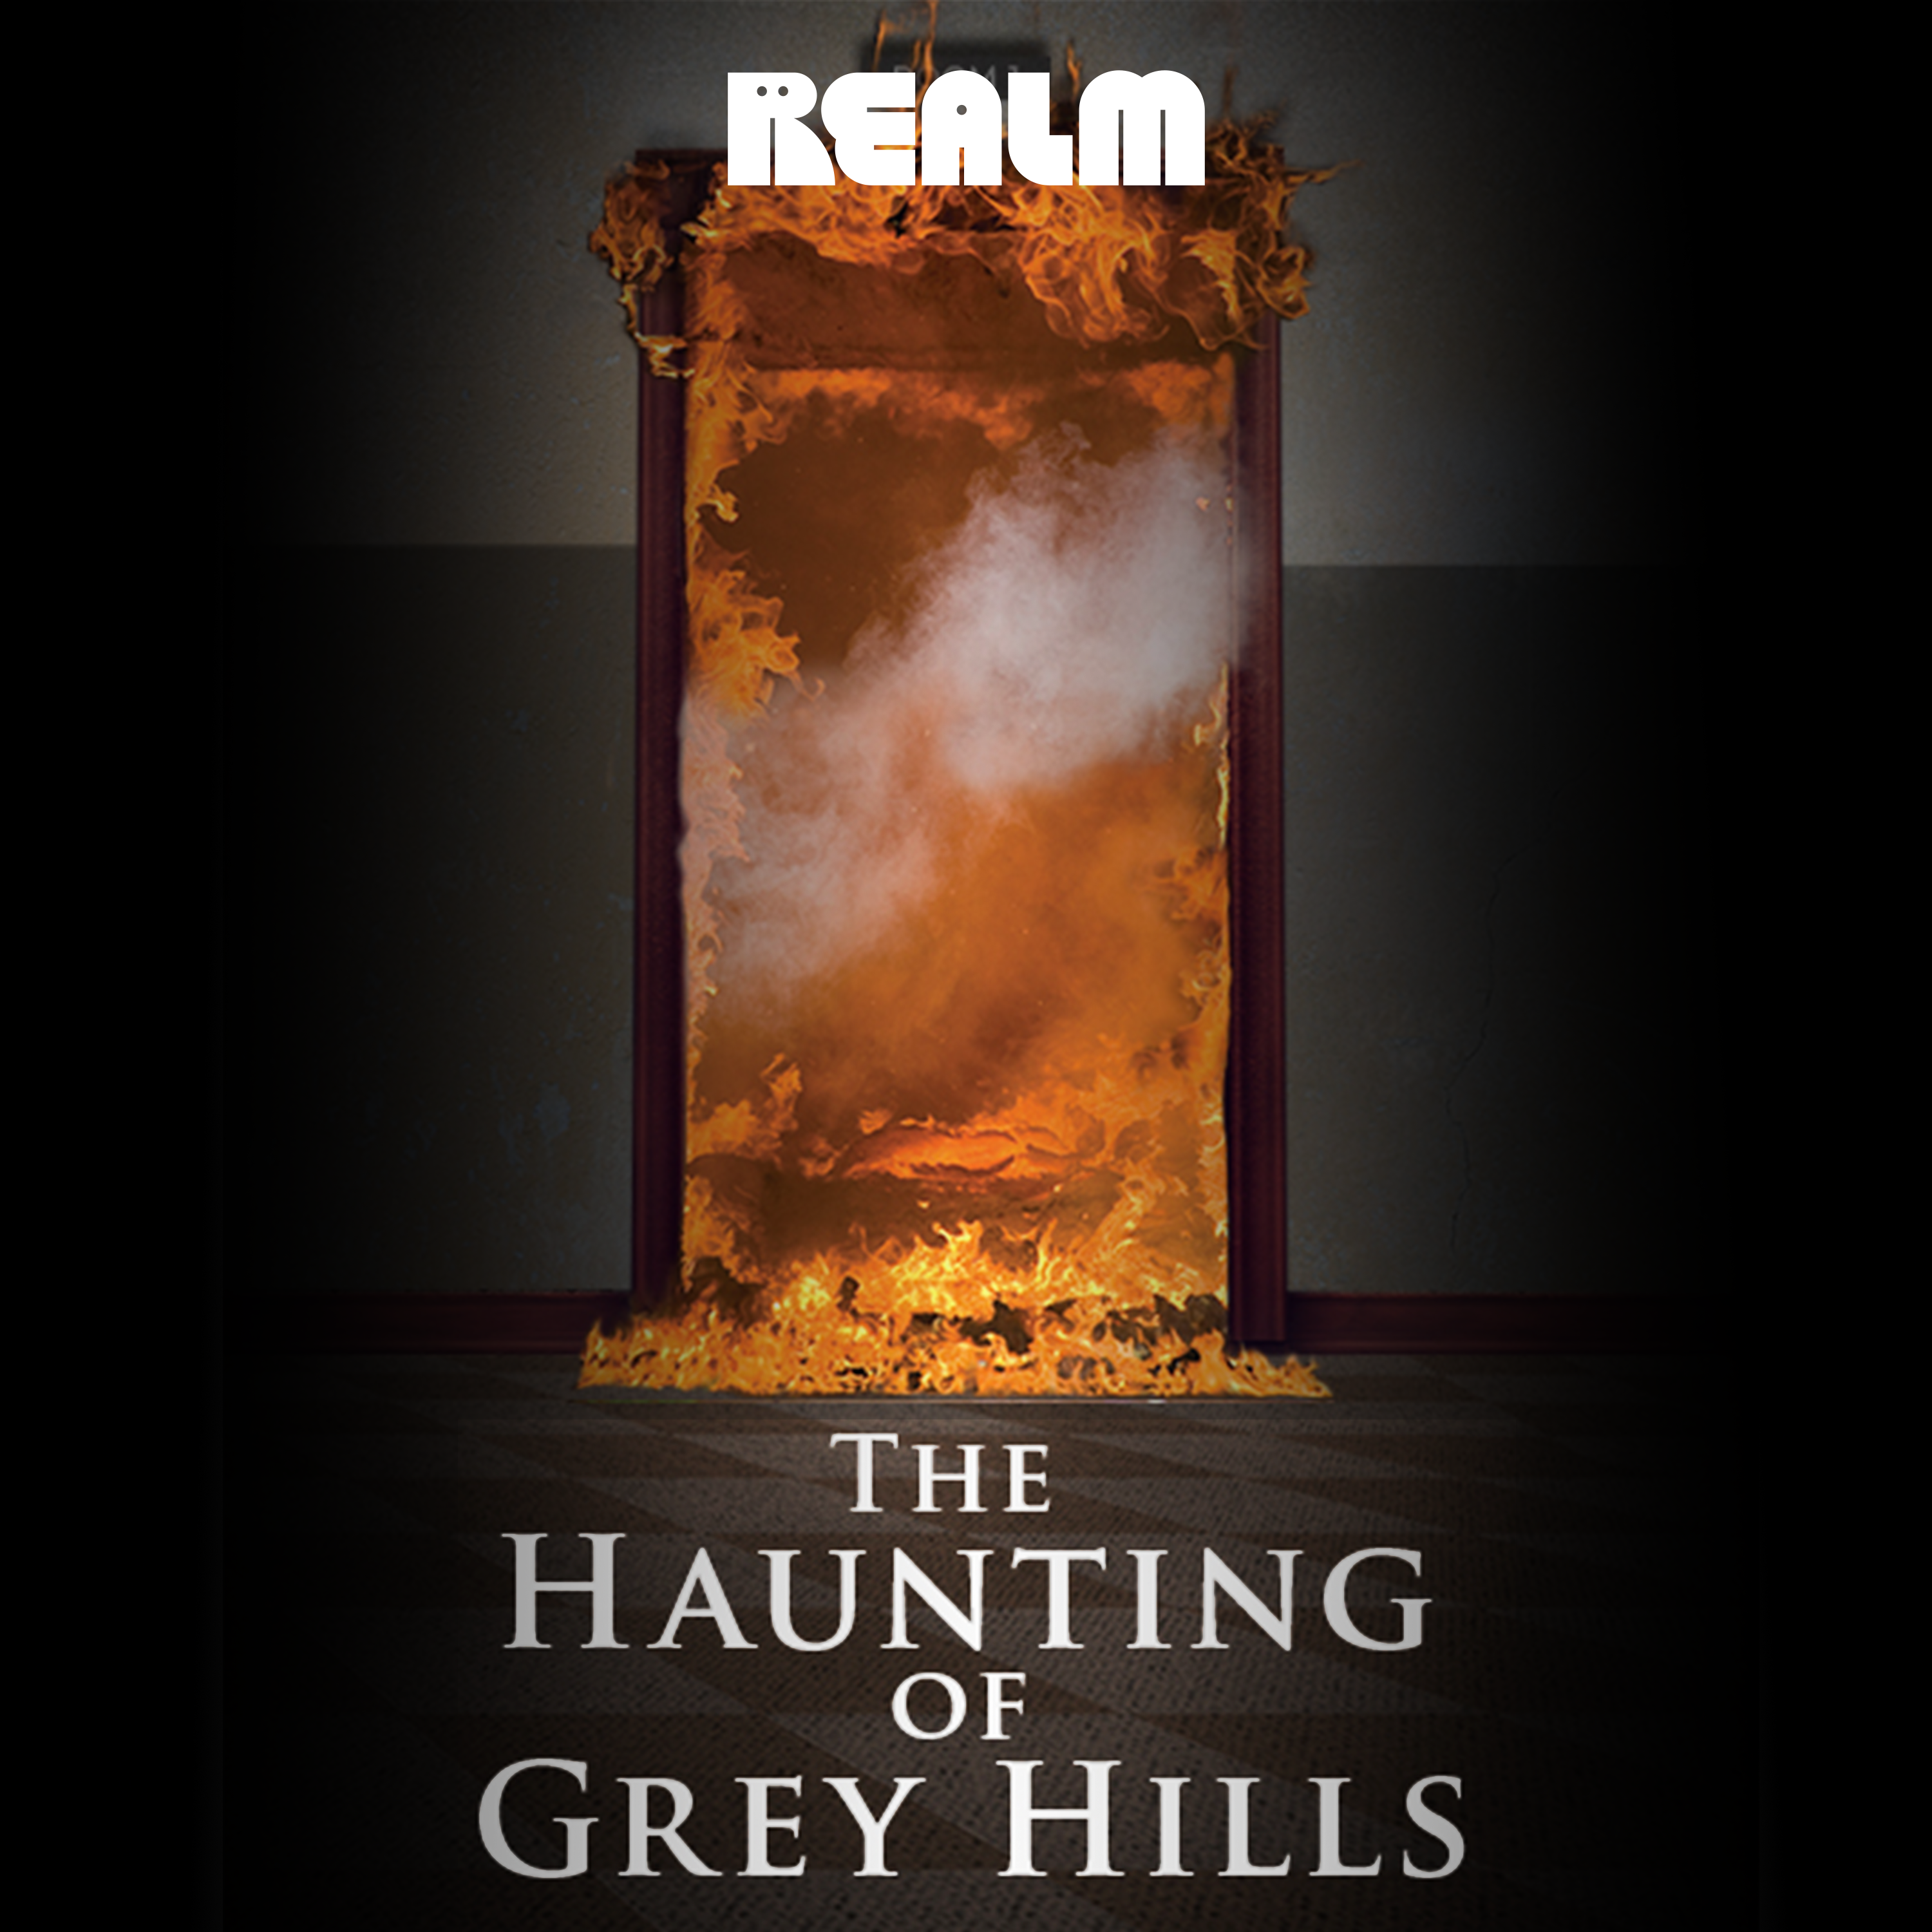 The Haunting of Grey Hills